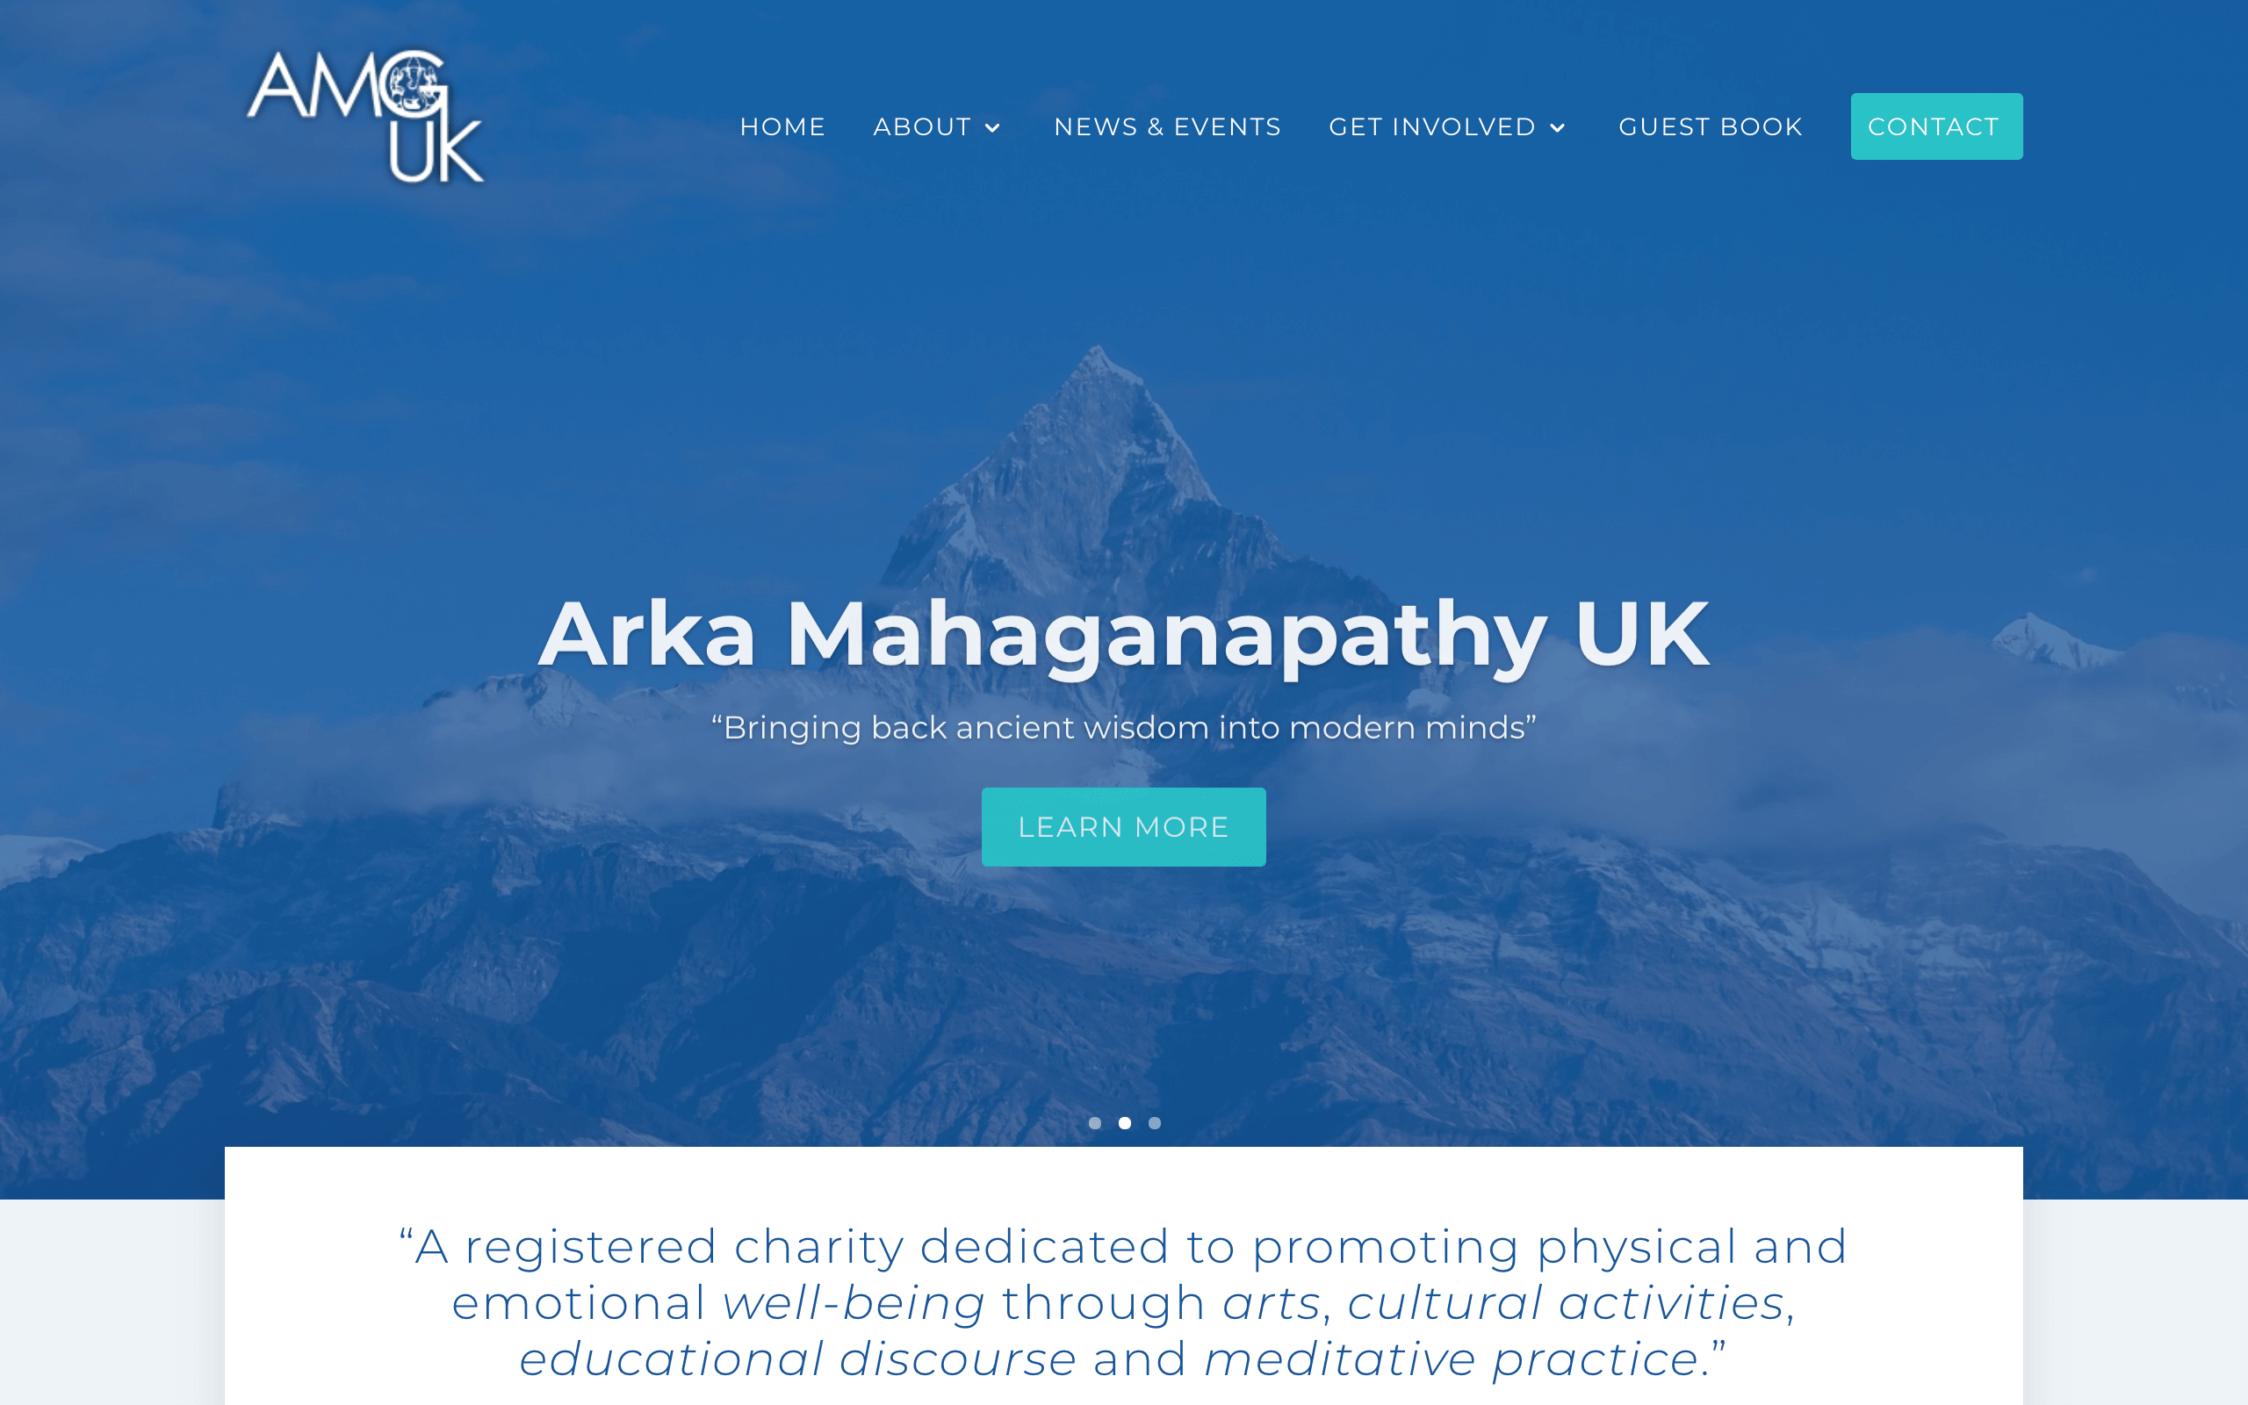 Screen Shot 2019 03 20 at 13.16.27 2 - Website design for charity organisation